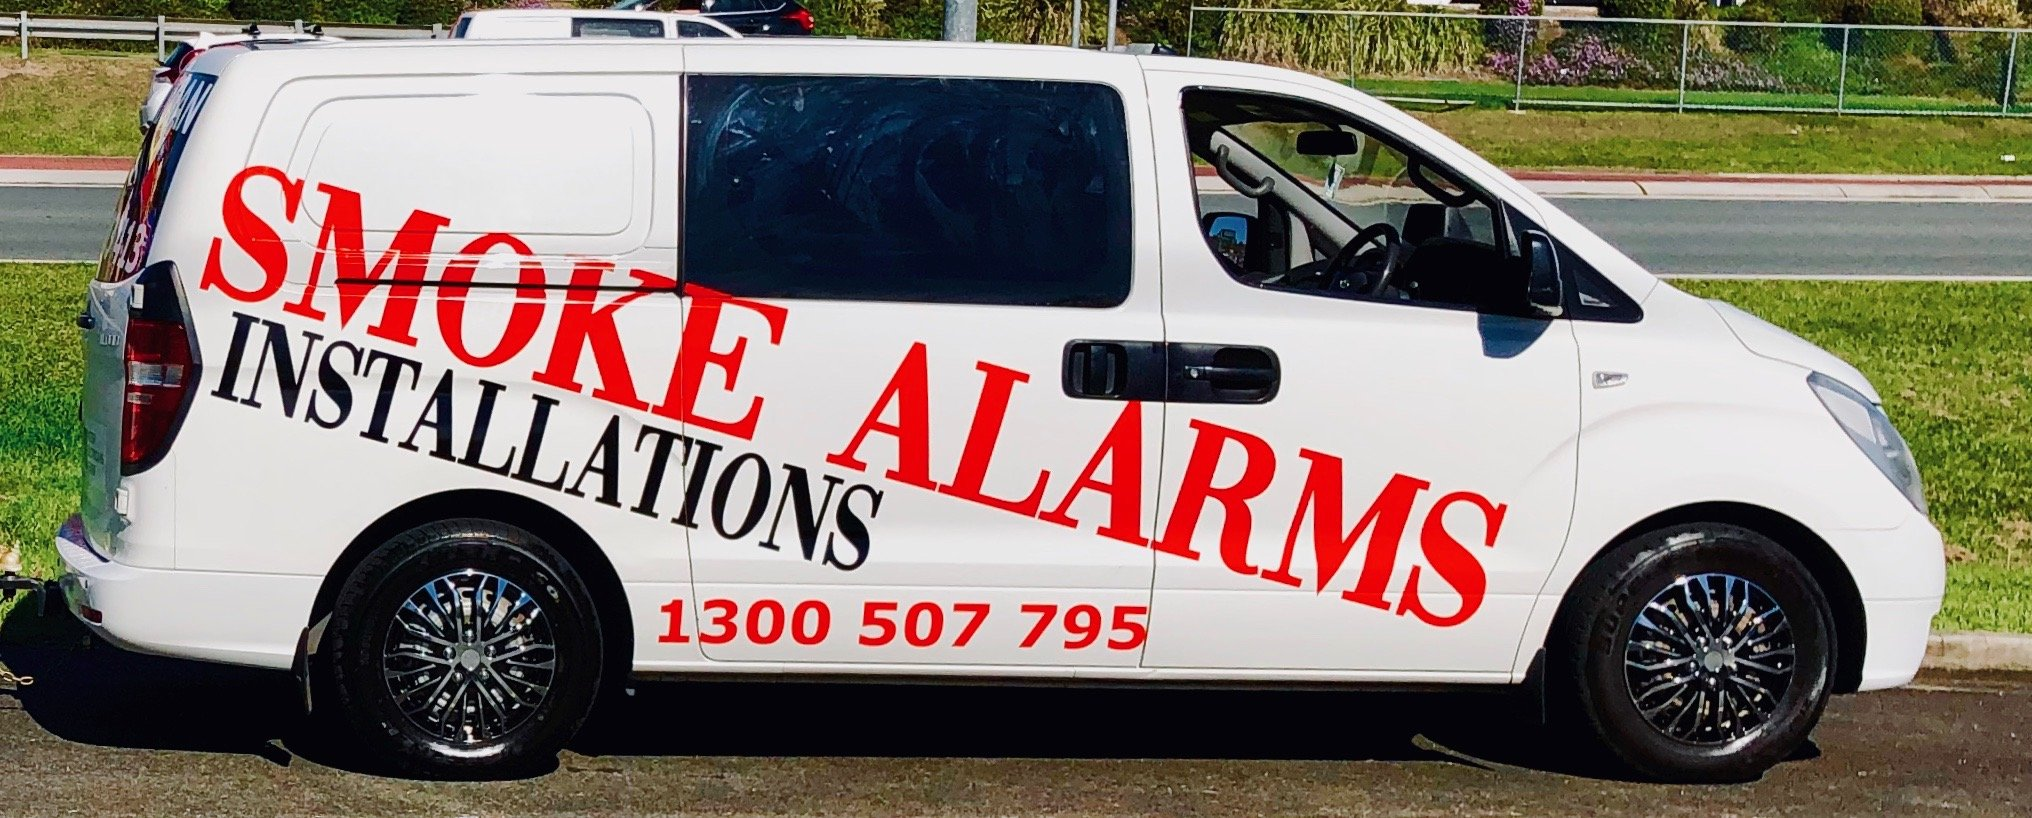 Smoke alarms installations